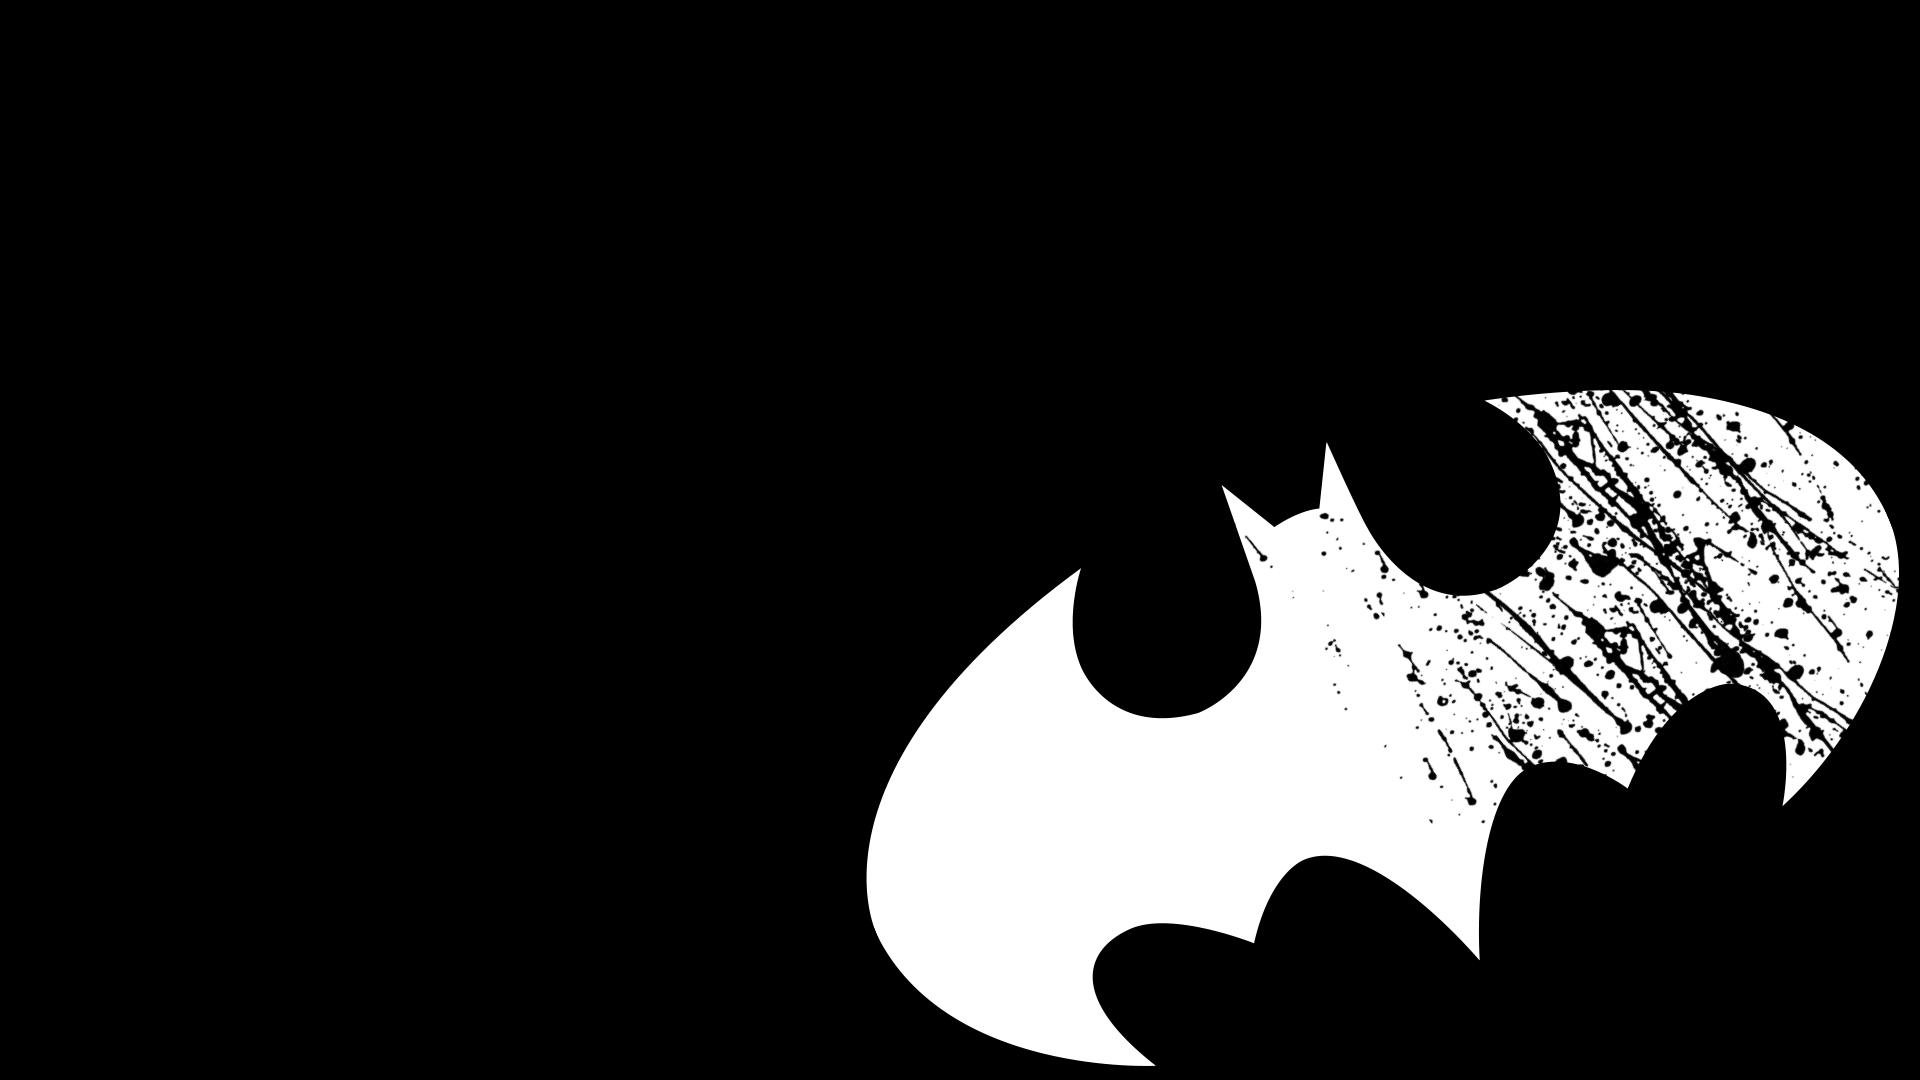 Top Wallpaper Logo Danger - batman-logo-wallpaper-for-desktop-1080p-121  Snapshot_287338.jpg